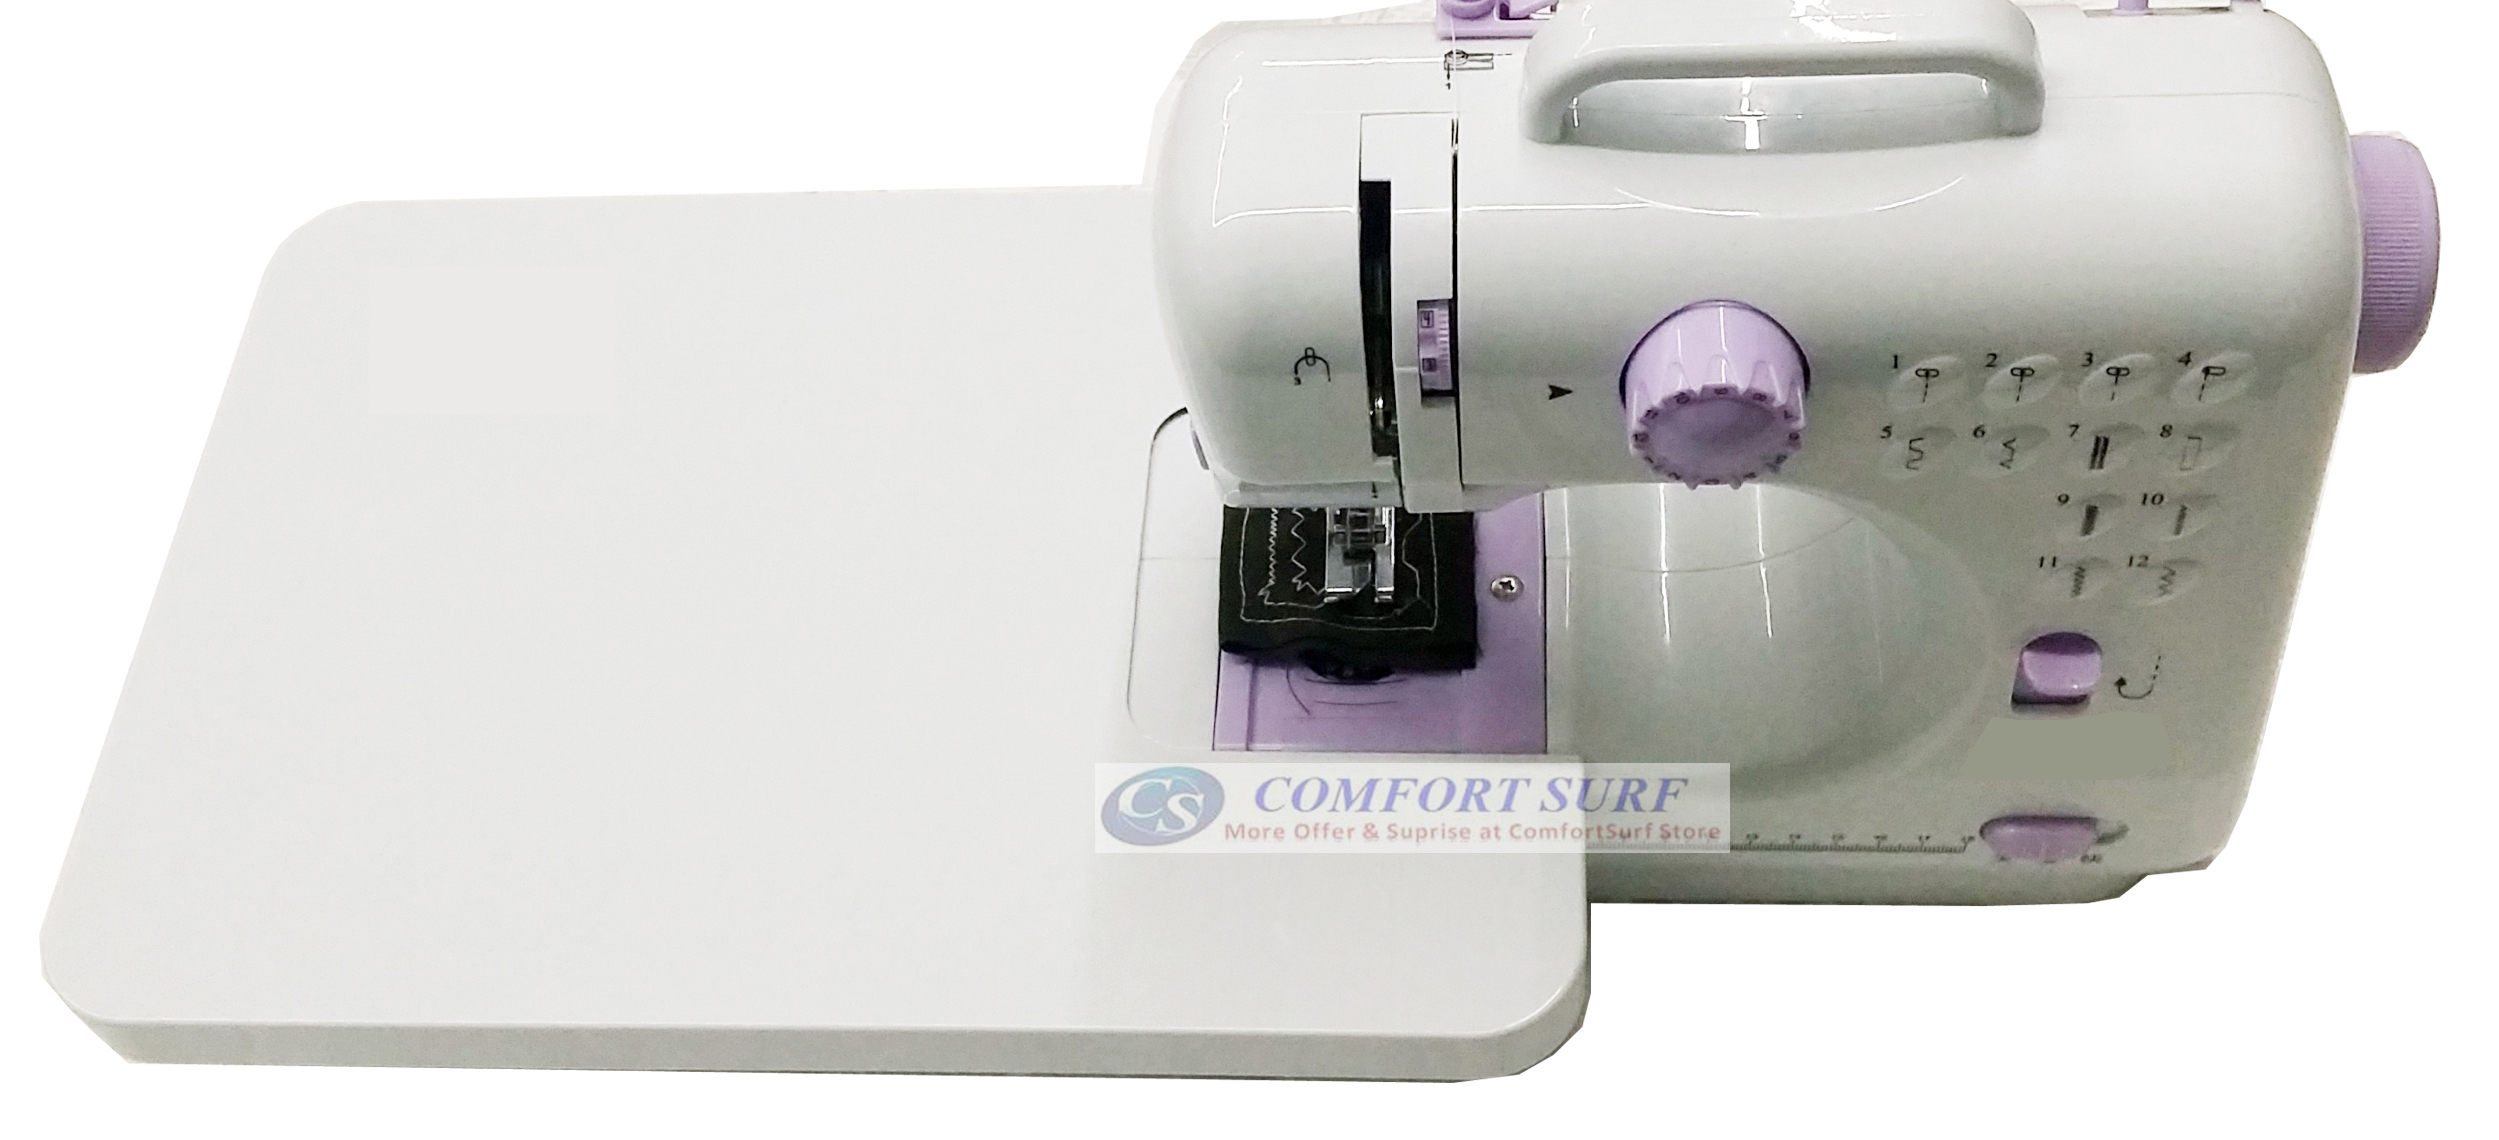 Latest Original FangHua FSHM-505 Pro Upgraded 12 Functions Mini Portable Handheld Sewing Machine / English Version / Manual